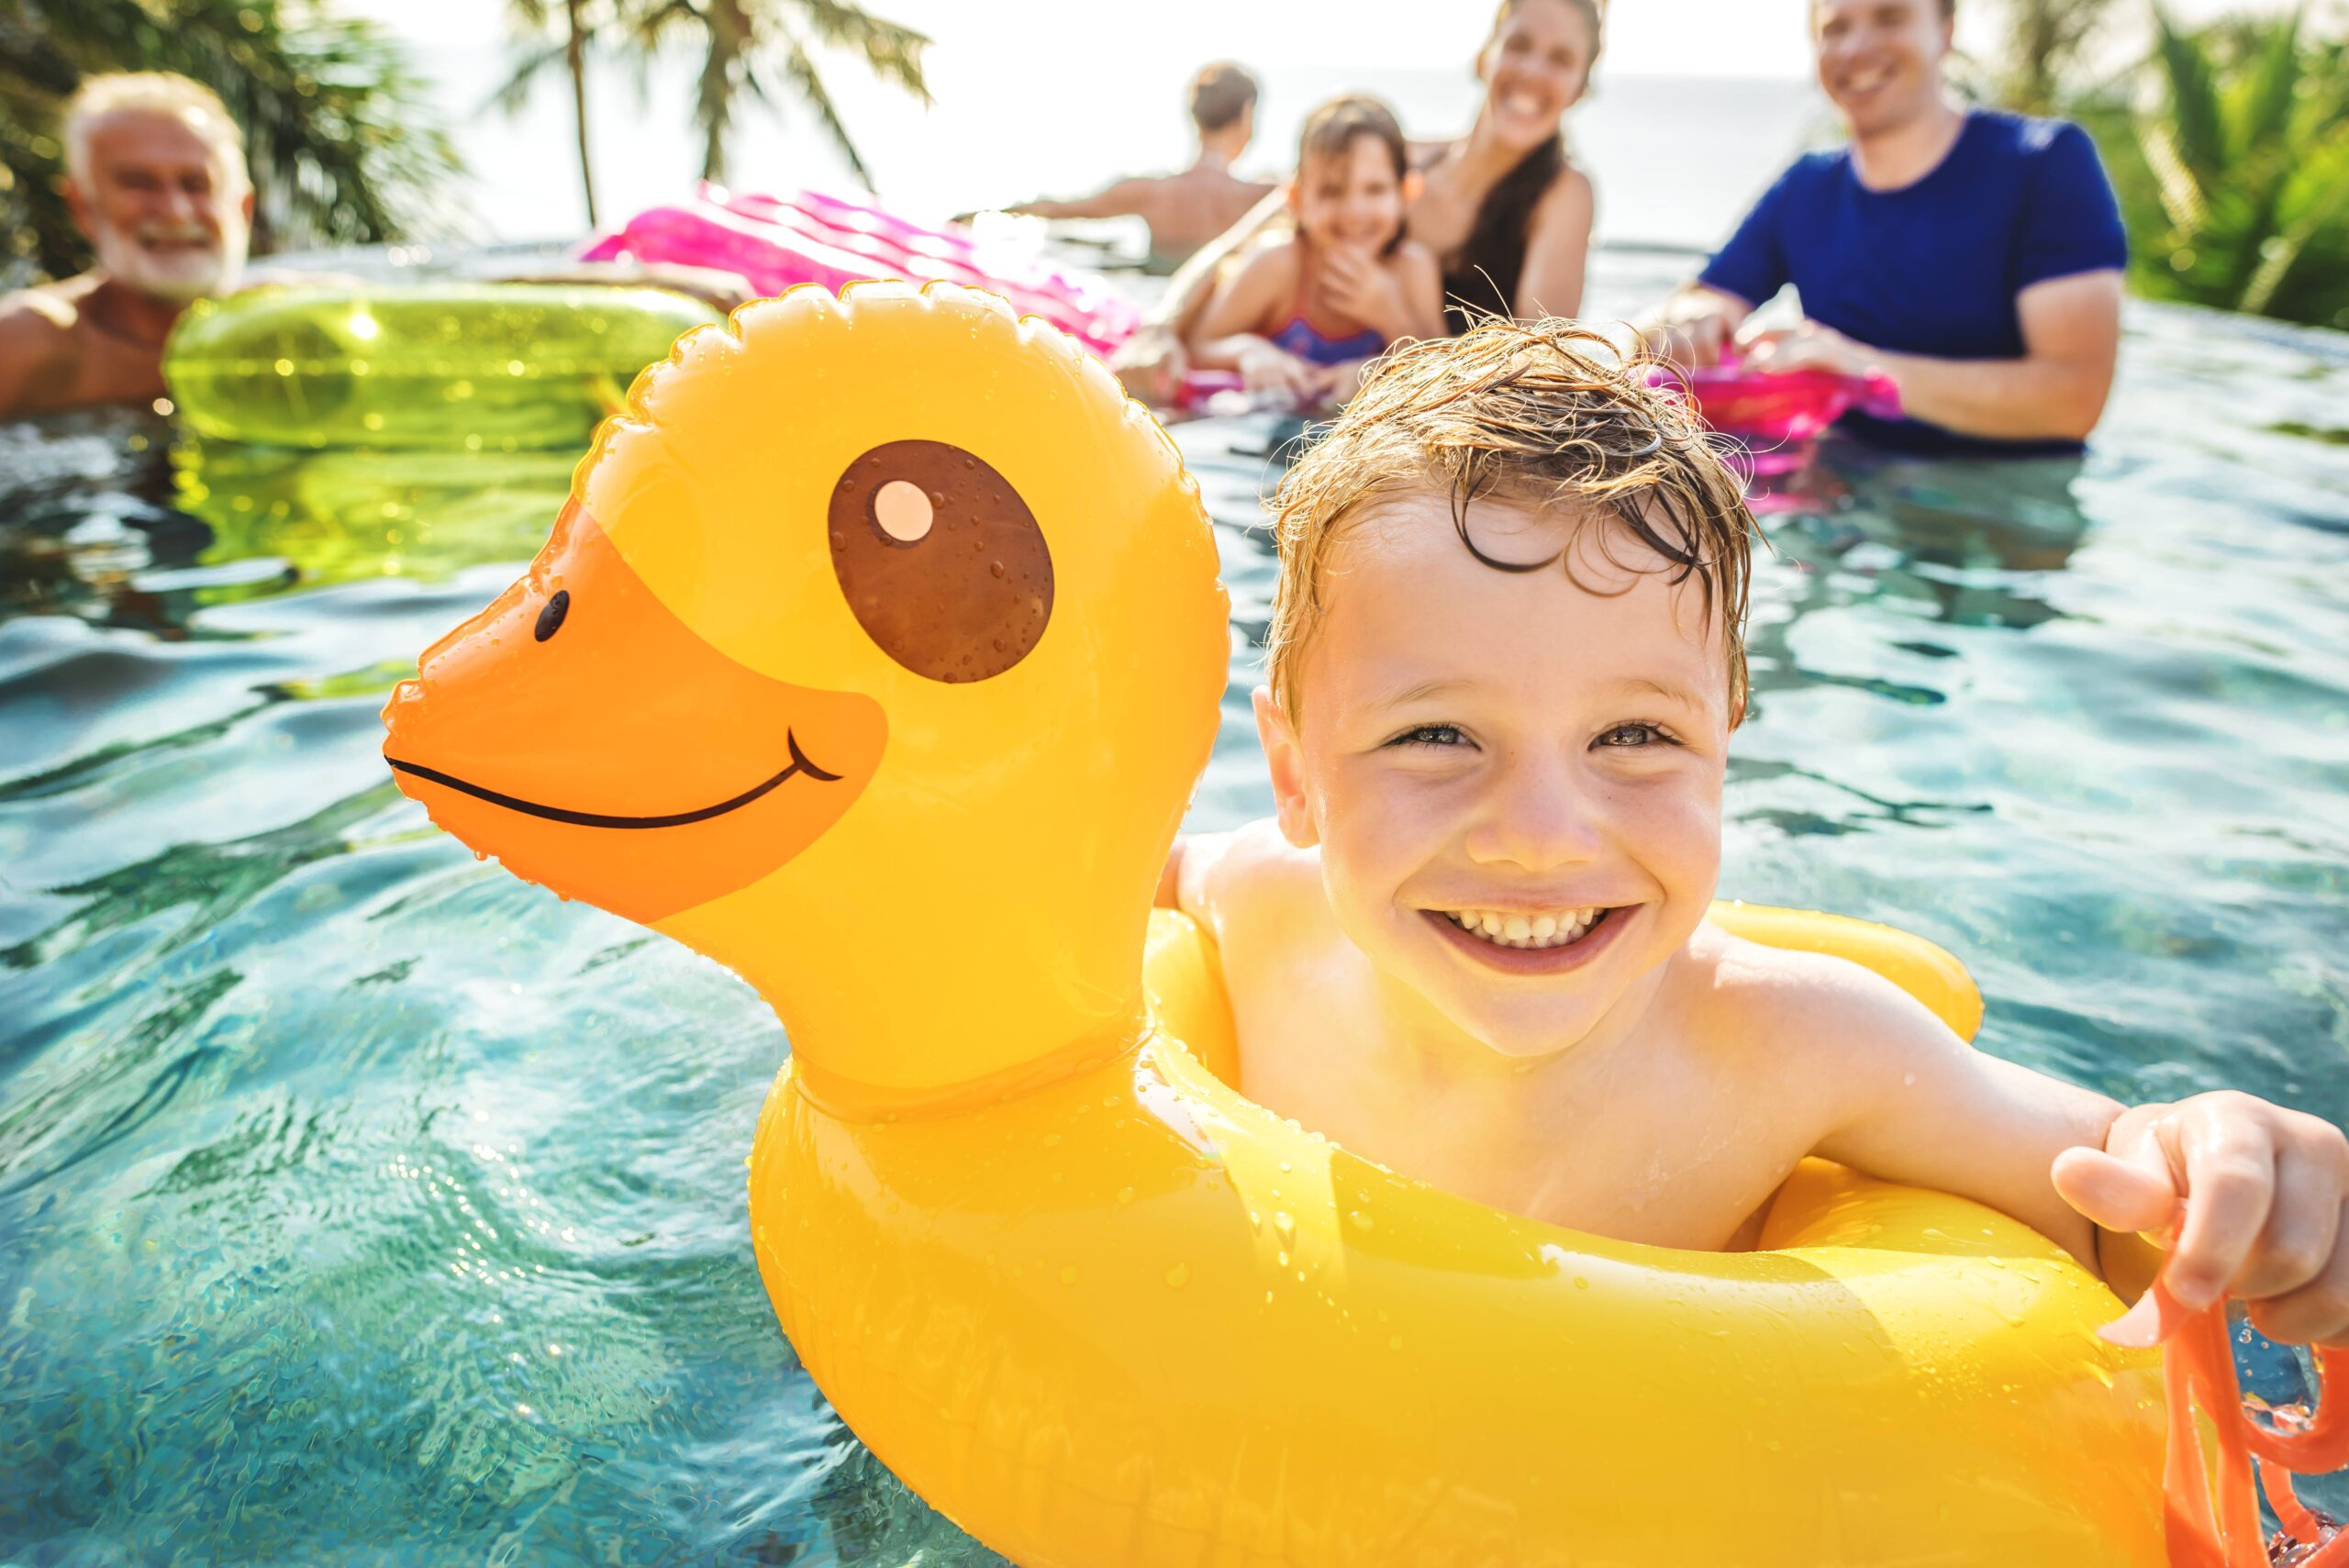 Young Boy Swimming in a pool during summertime.